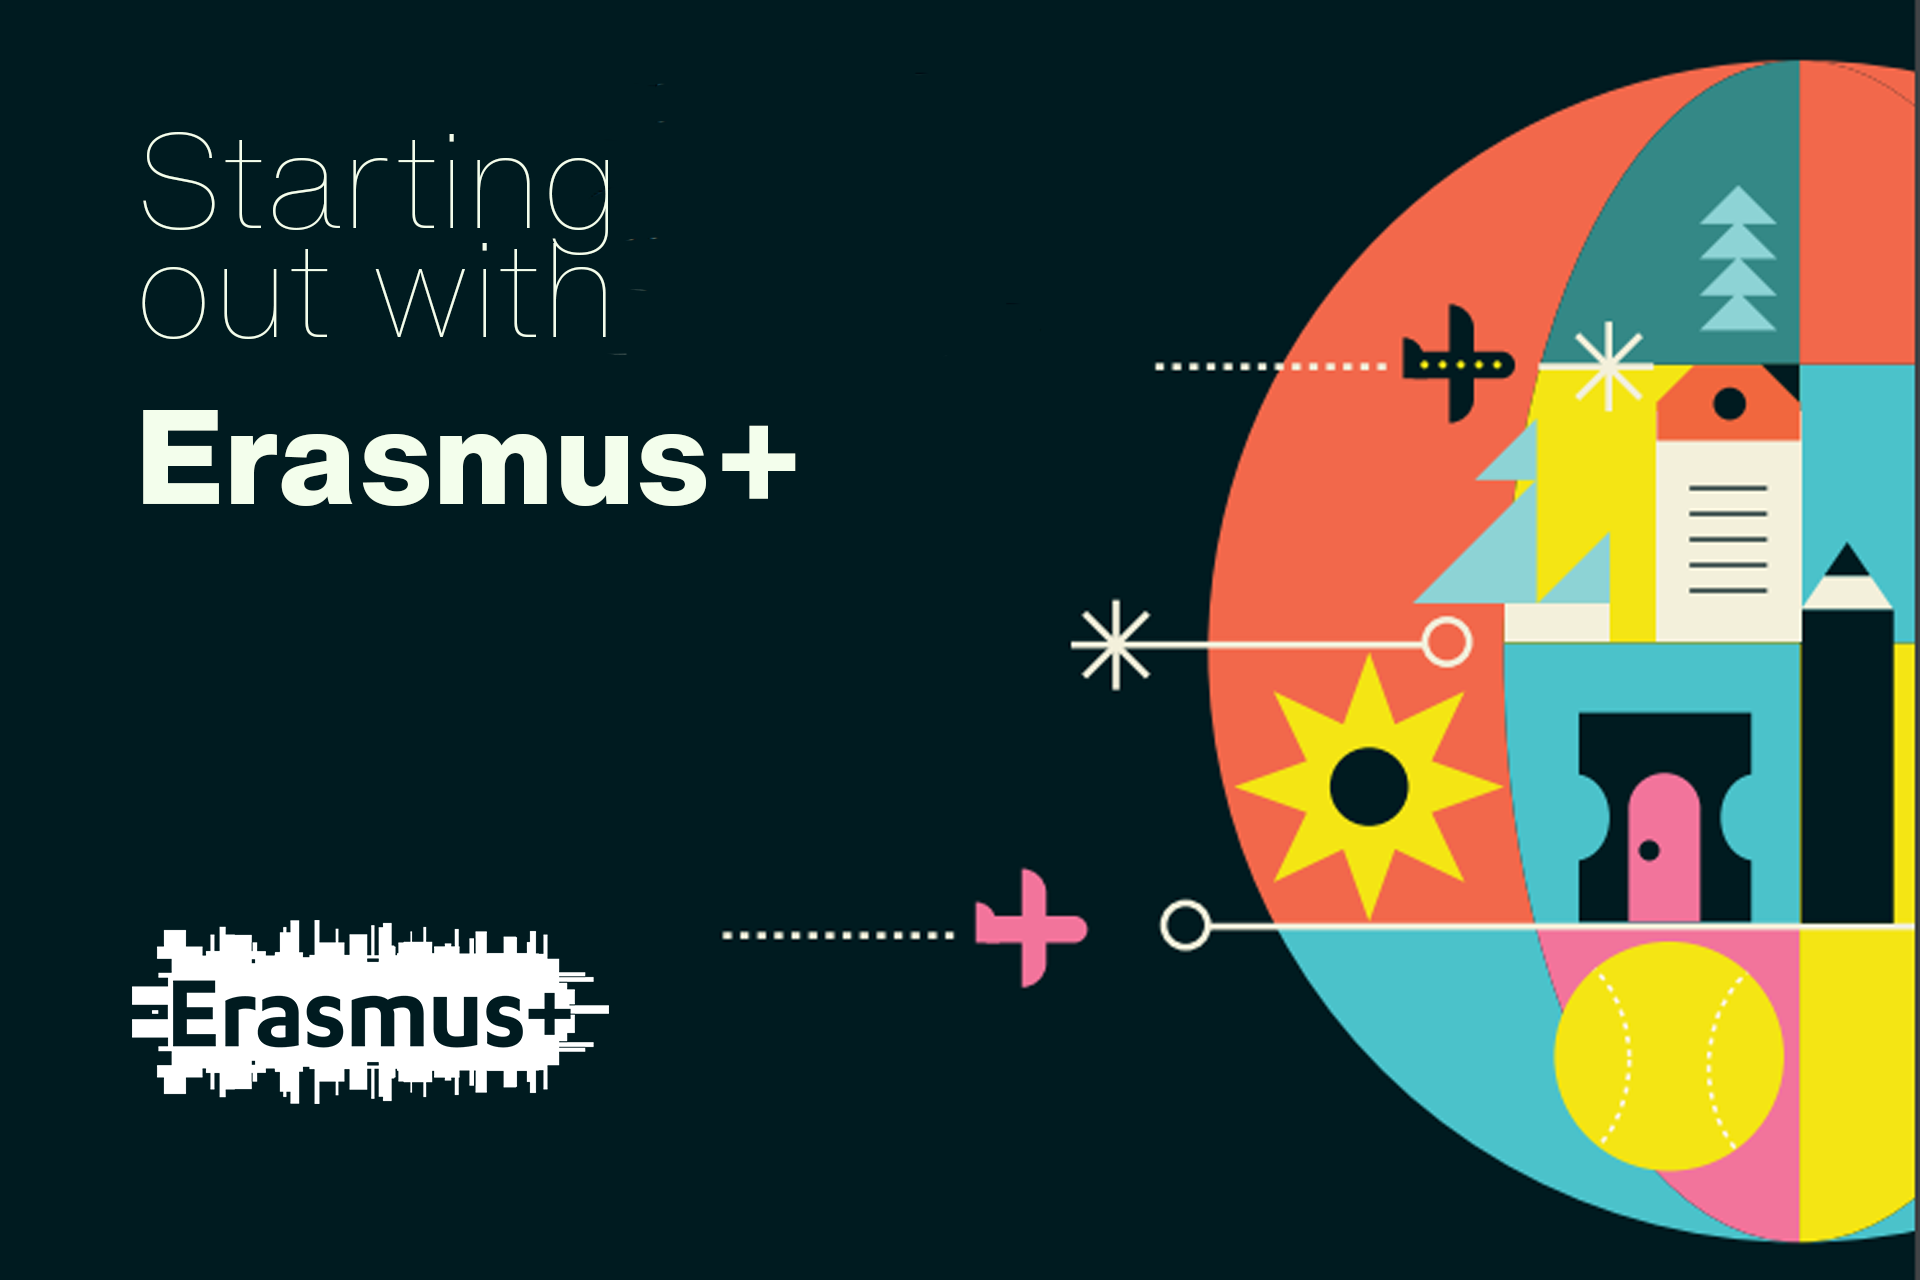 Starting Out With Erasmus+ Guide